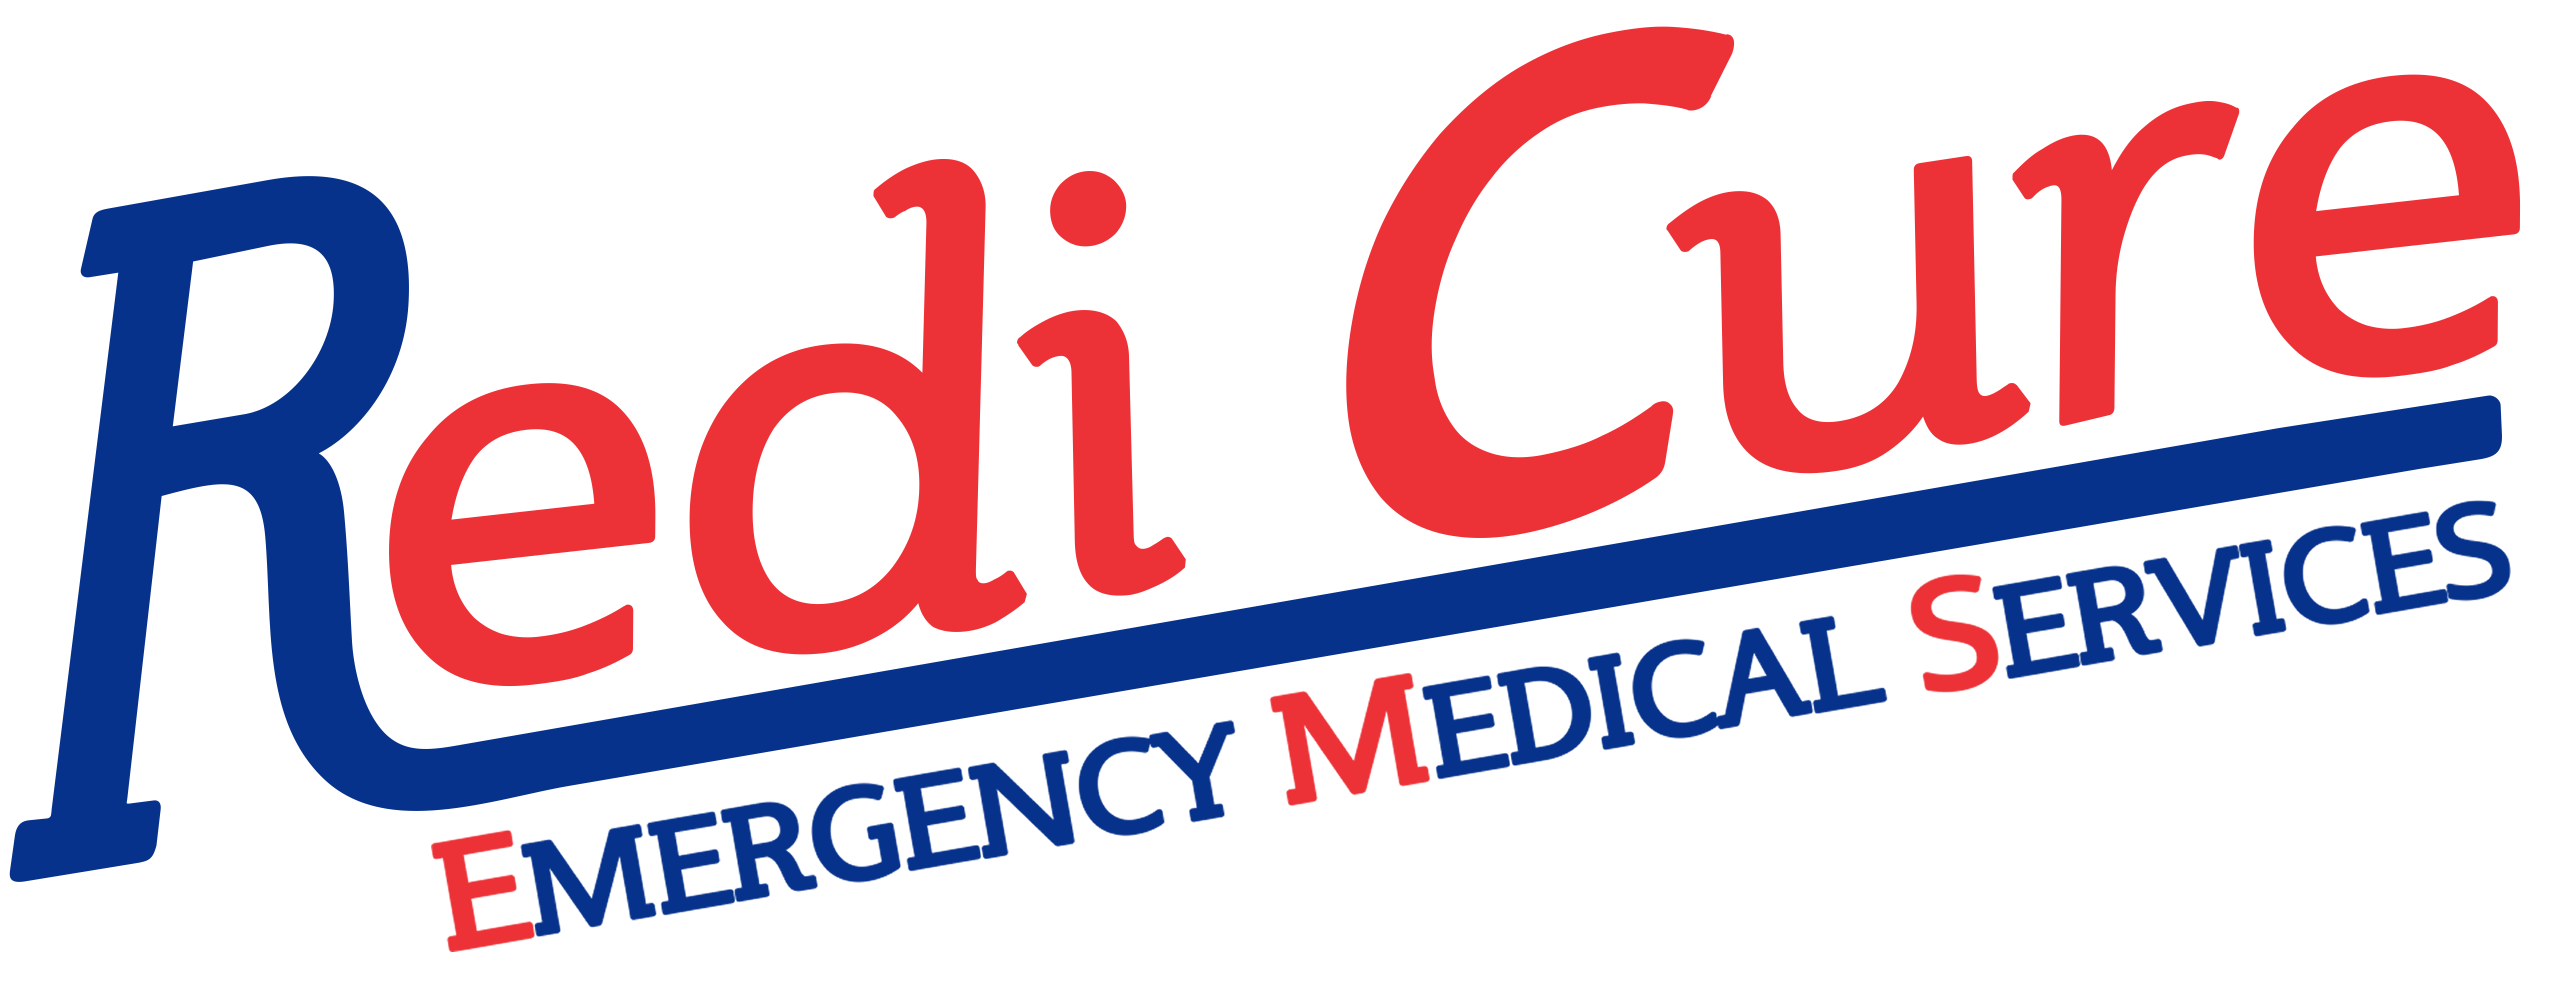 REDICURE EVENT AND EMERGENCY MEDICAL SERVICES